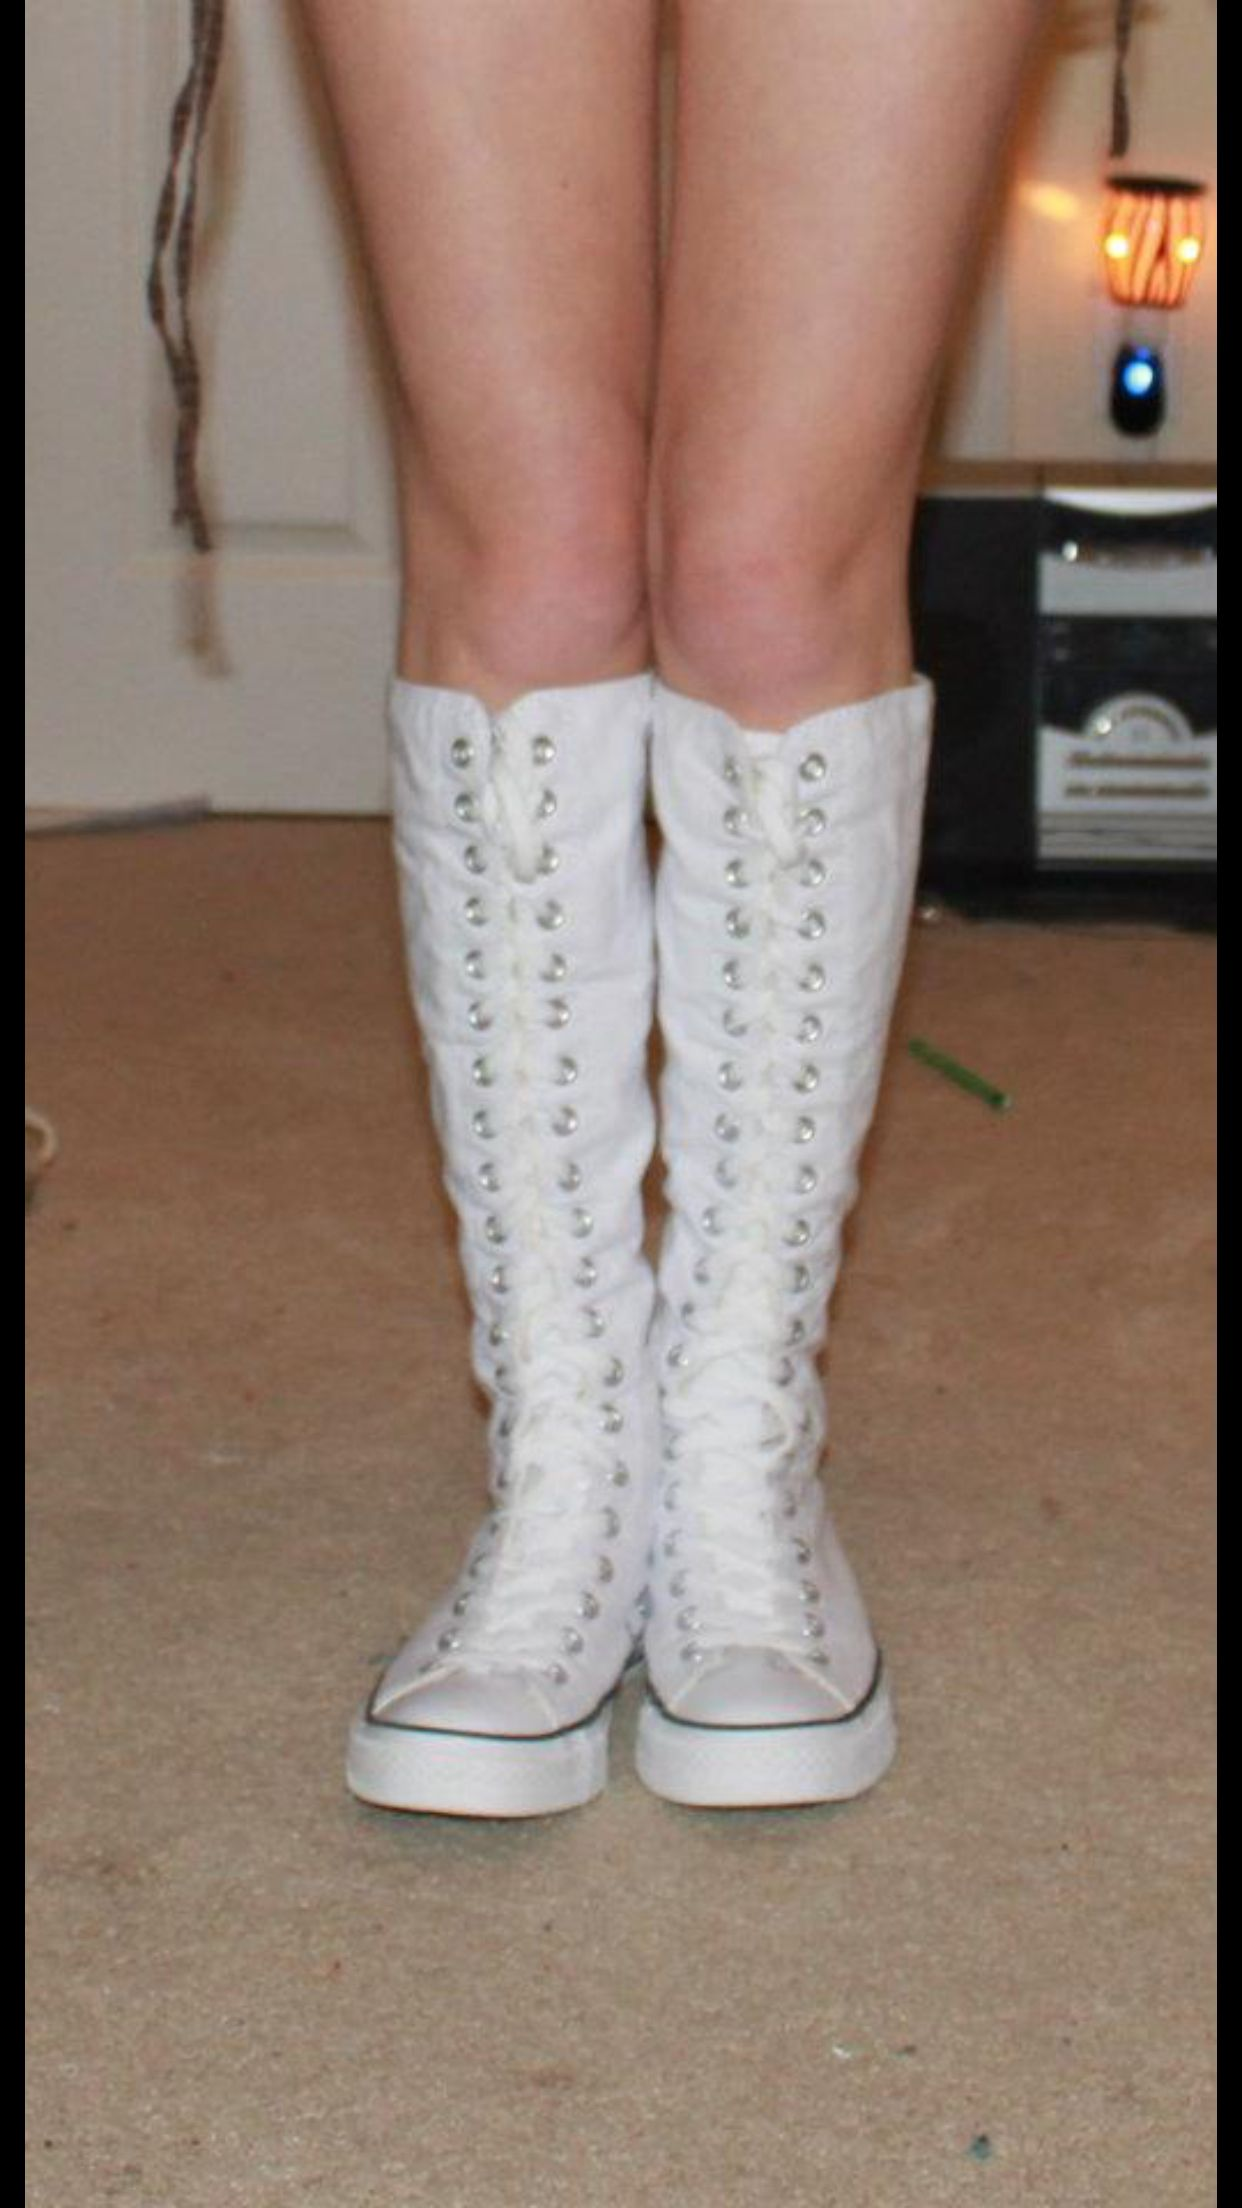 My 5th white knee high converse! These pair are for my thick